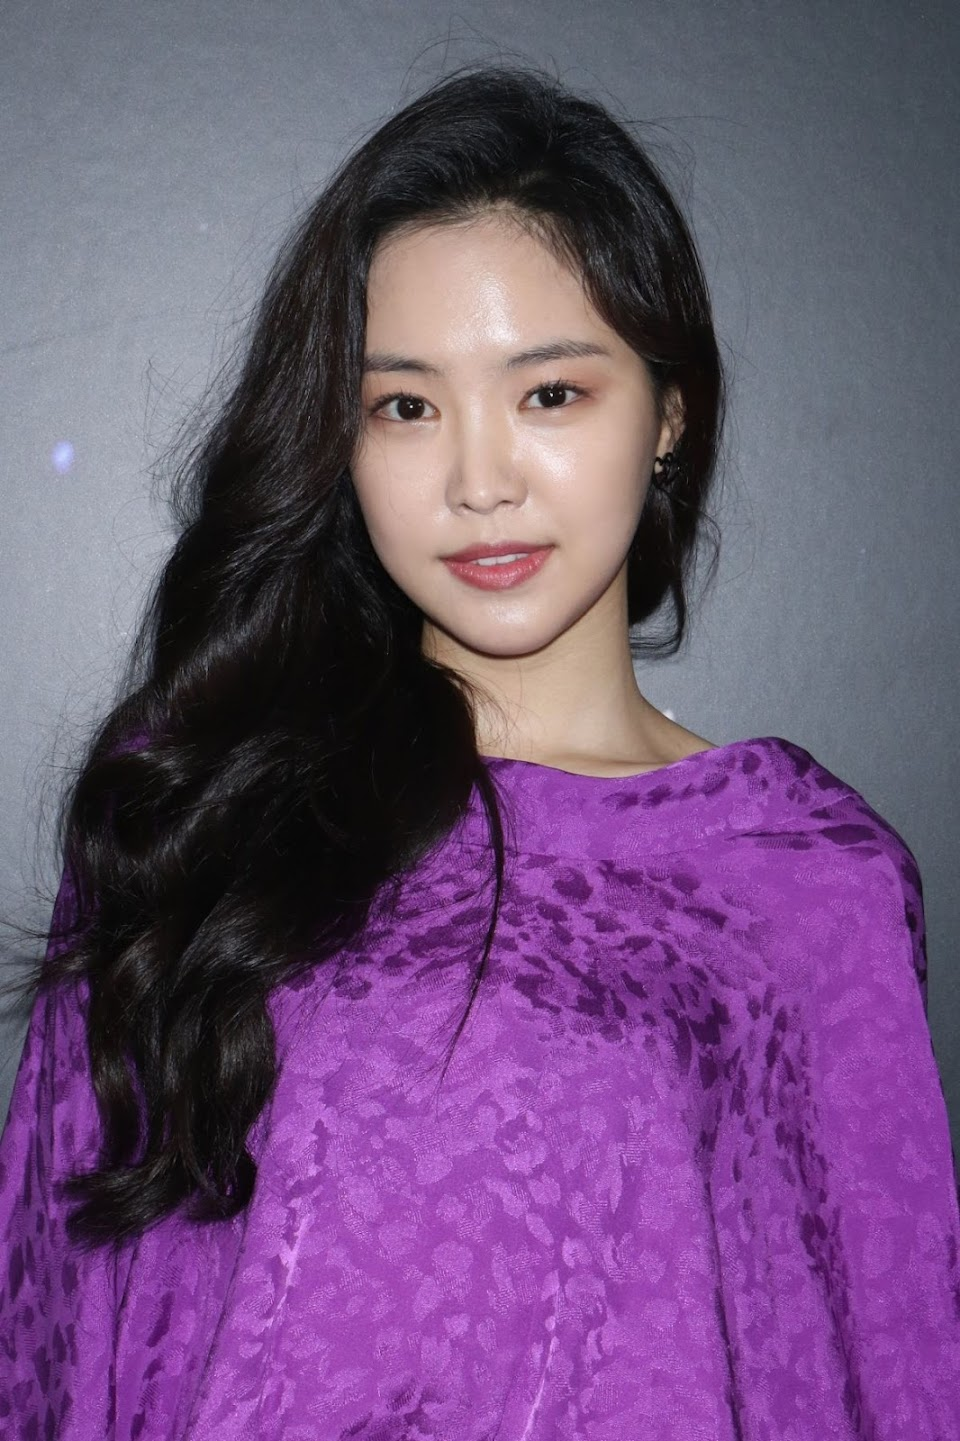 son-na-eun-at-zadig-voltaire-show-at-new-york-fashion-week-02-12-2018-4